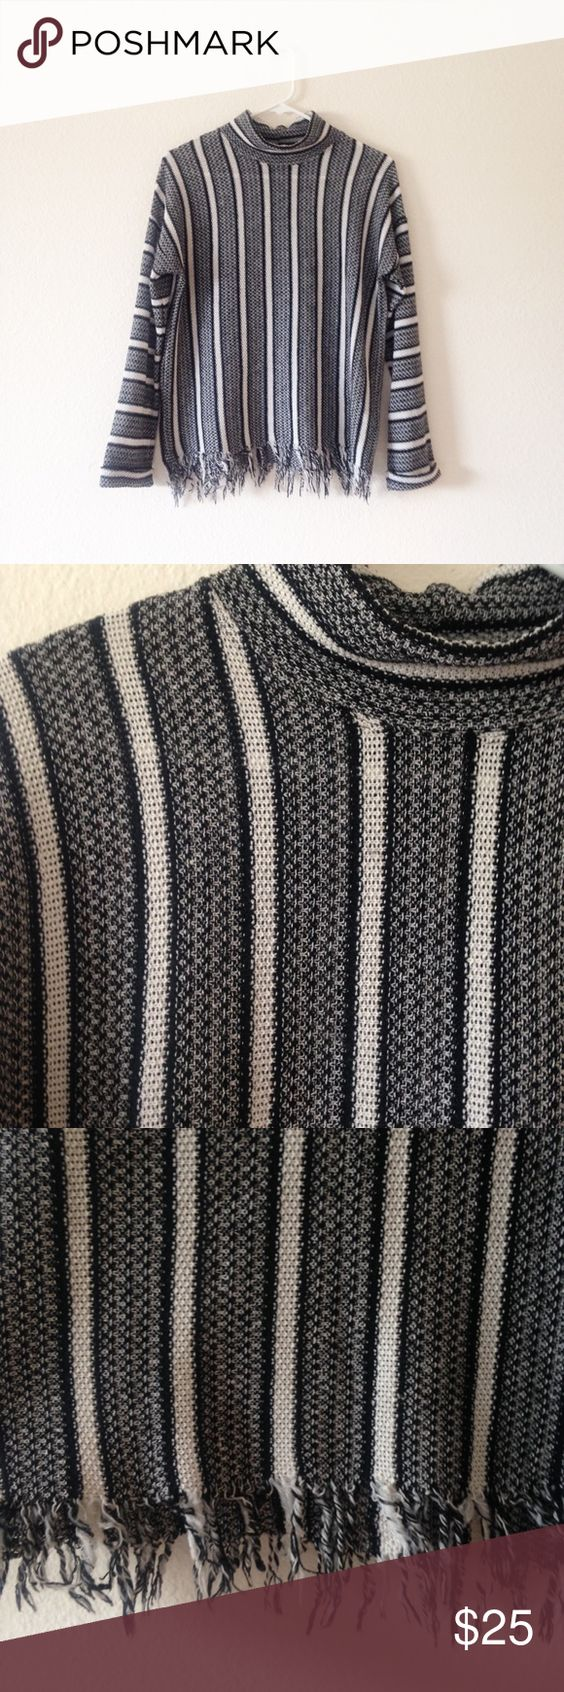 Topshop Knit Black and White Baja Sweater Perfect for a chilly ...